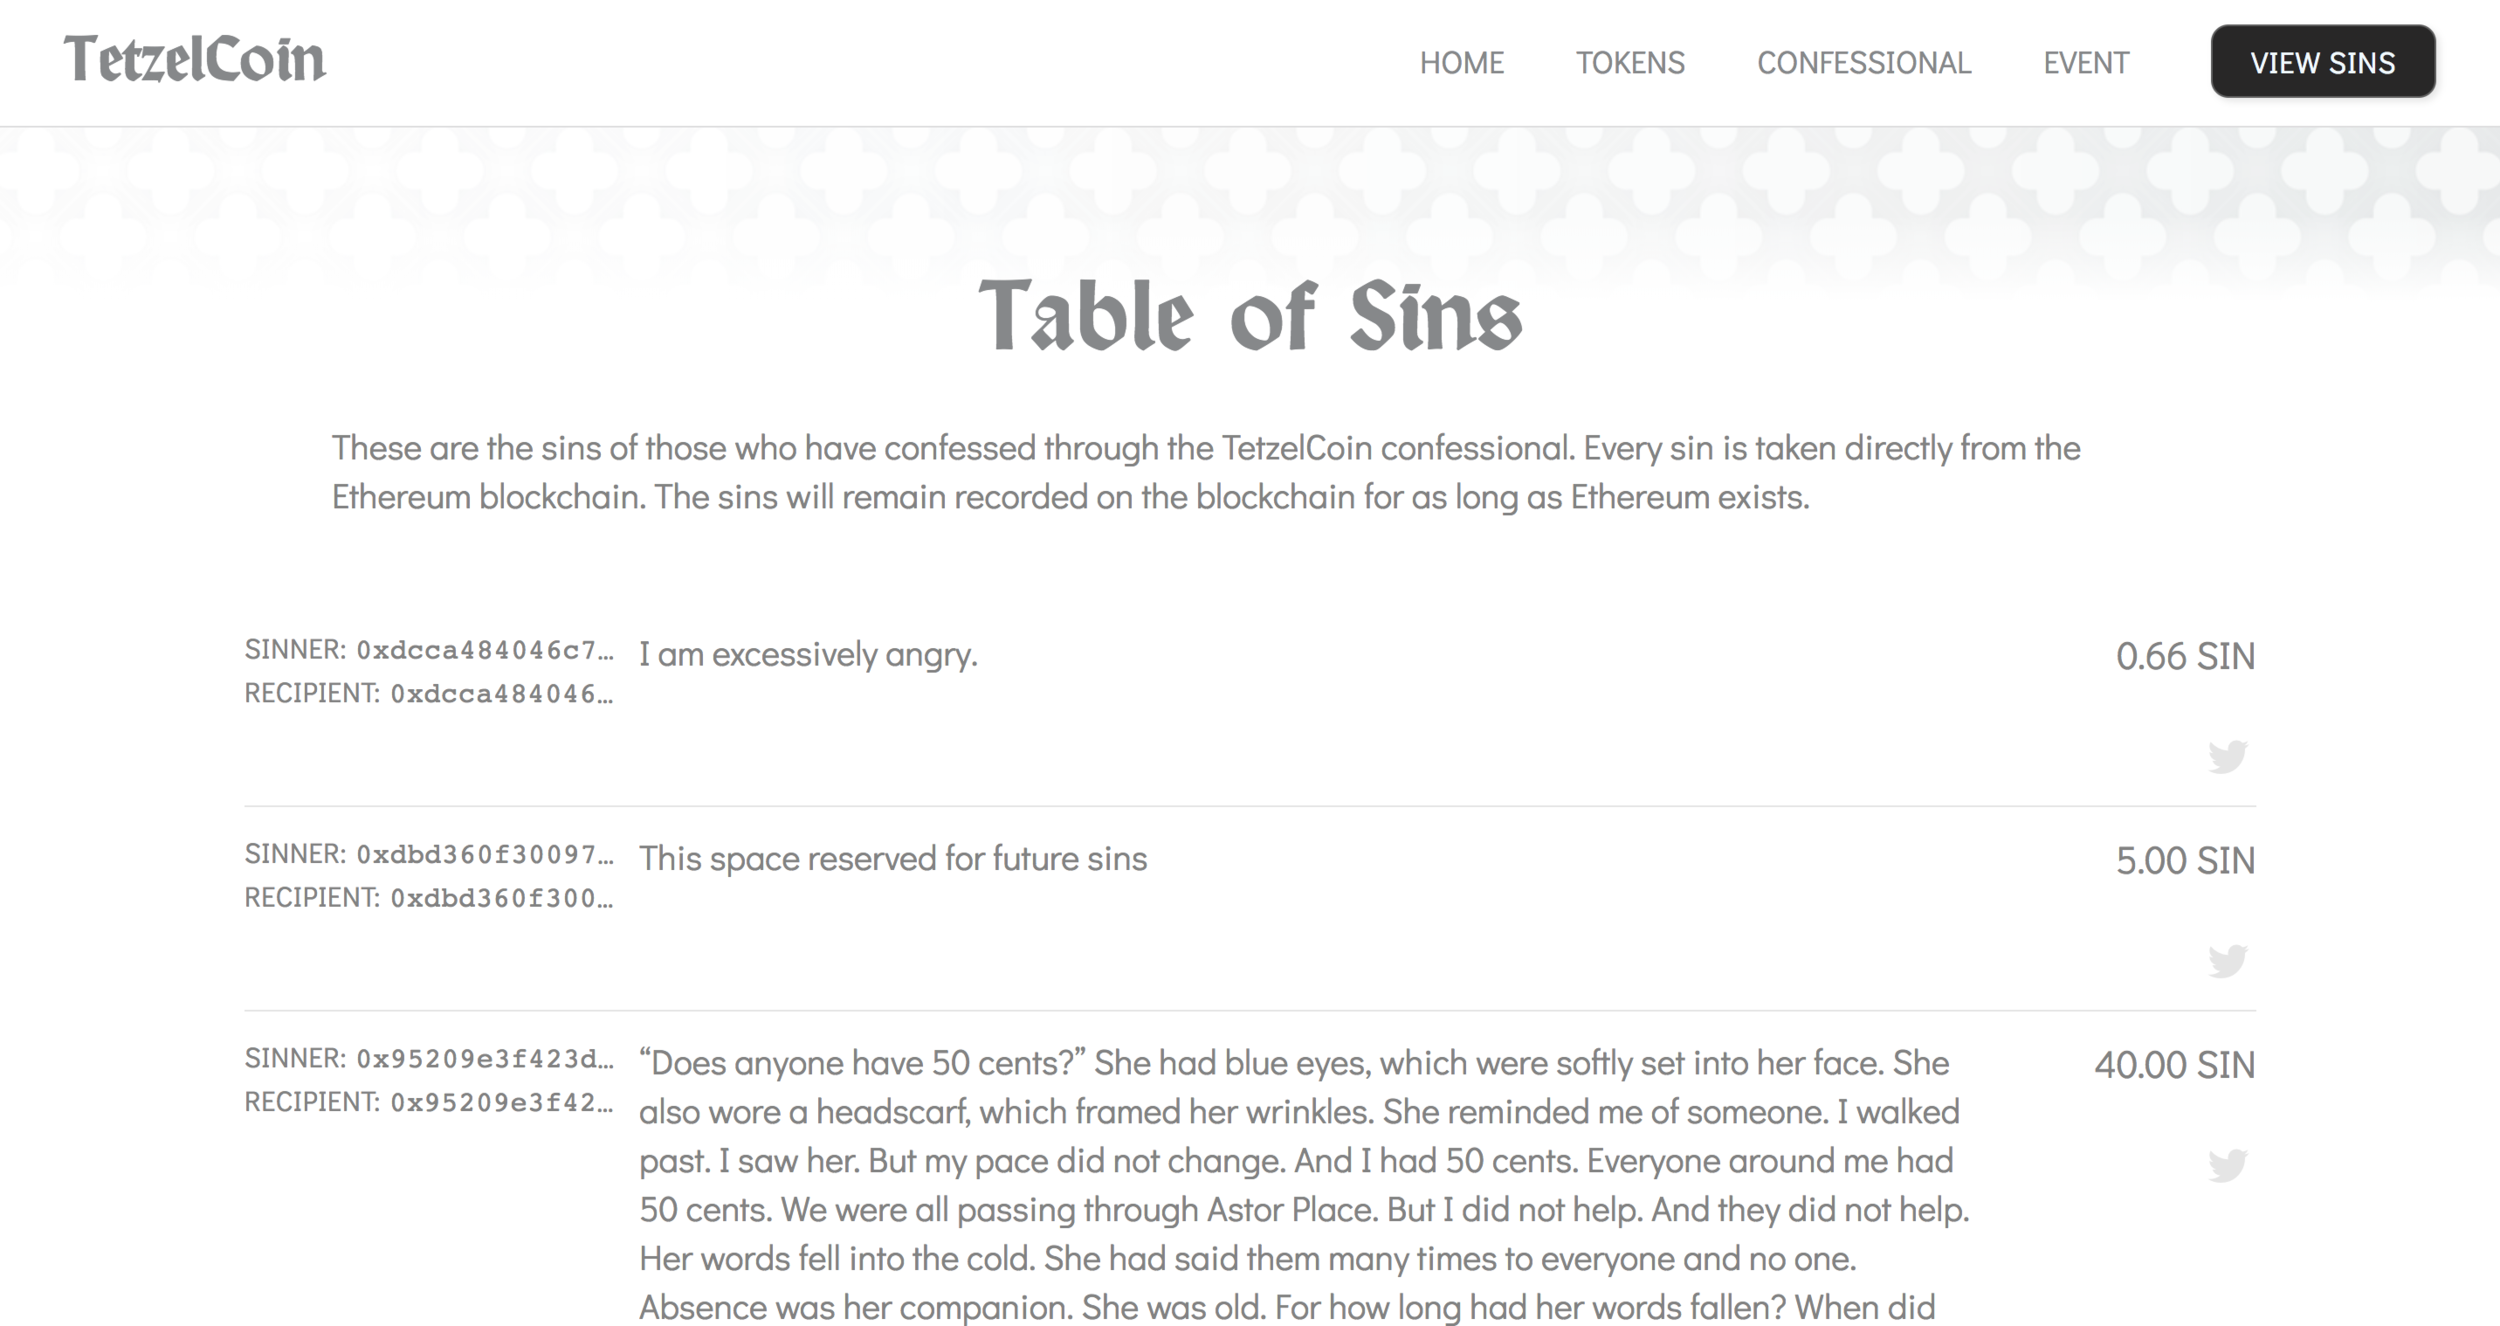 Table of Sins